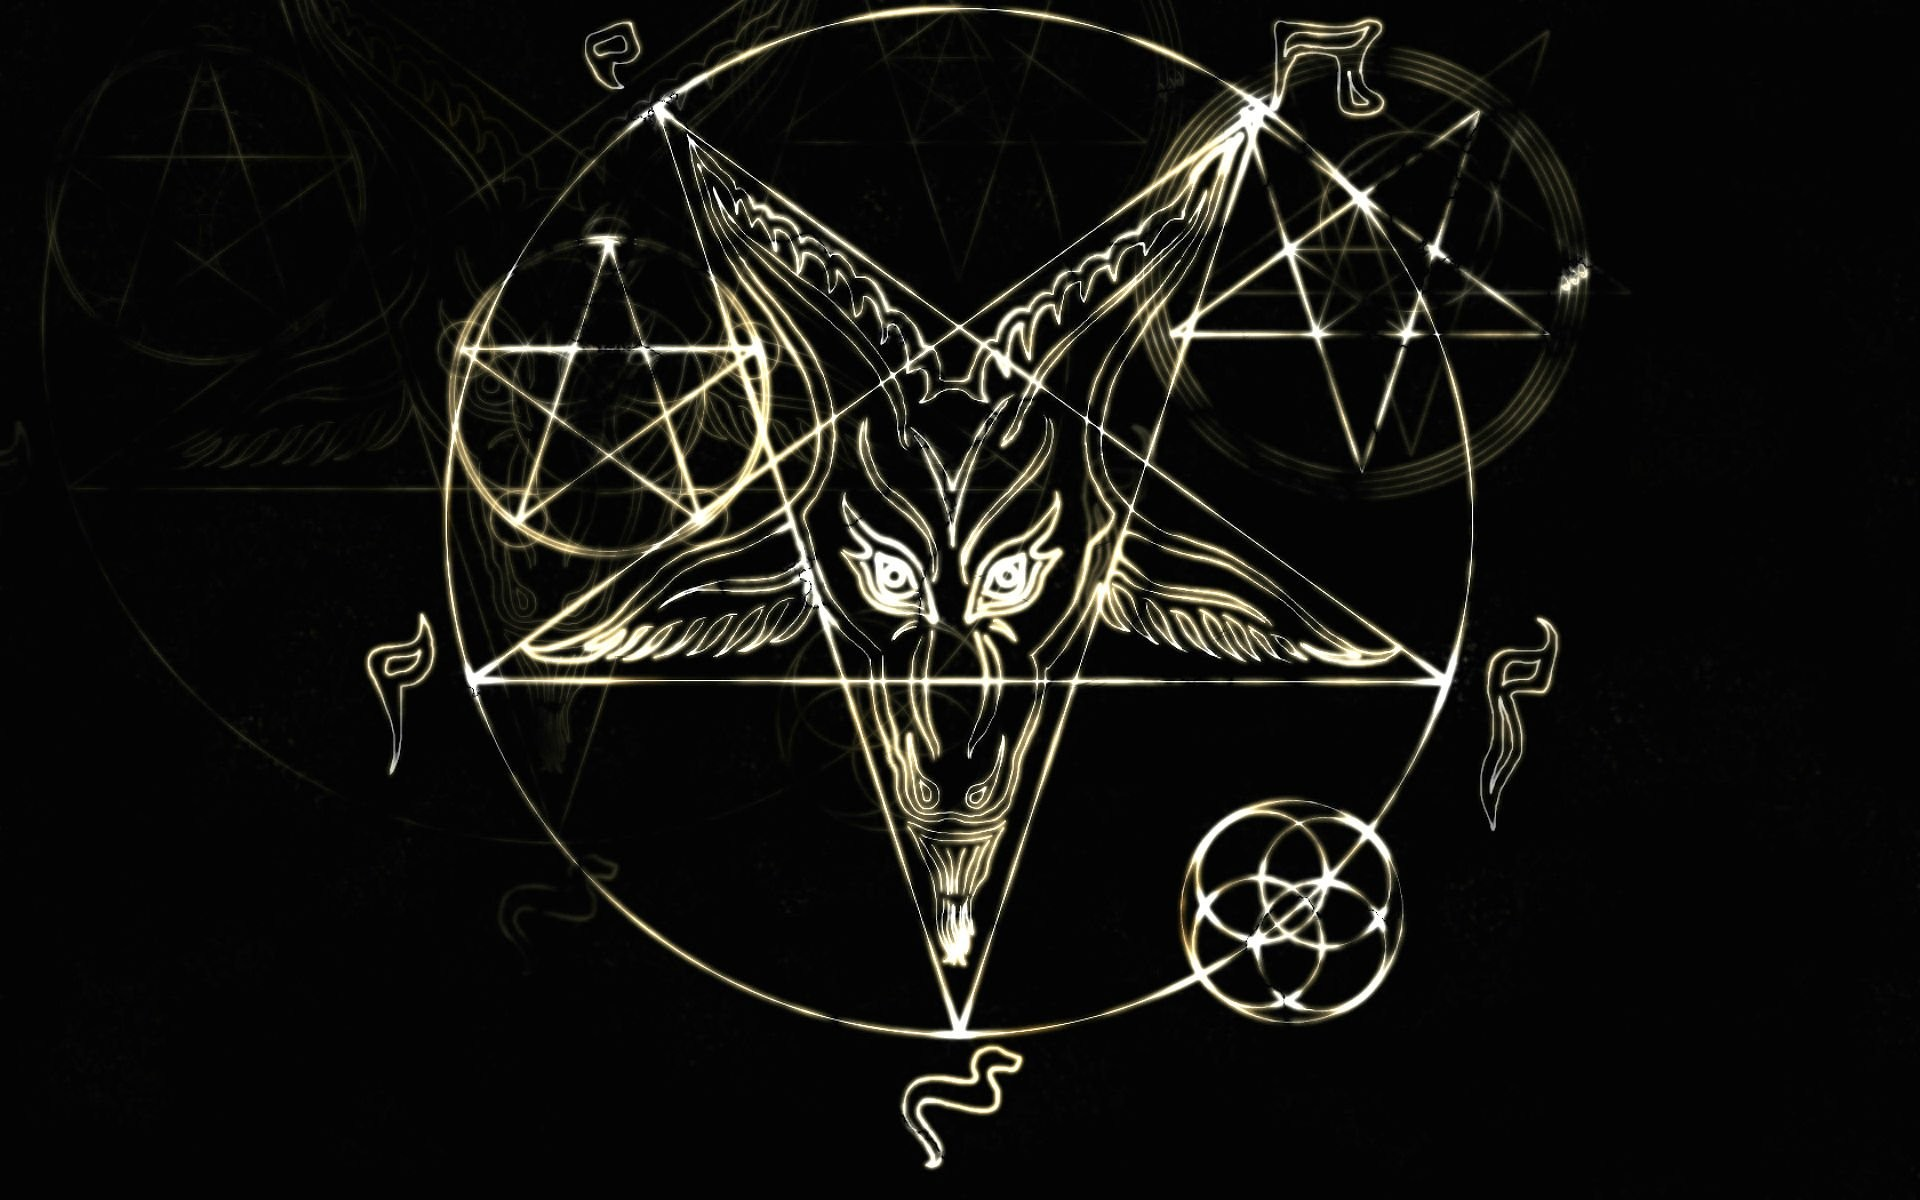 hail satan wallpaper 57 images